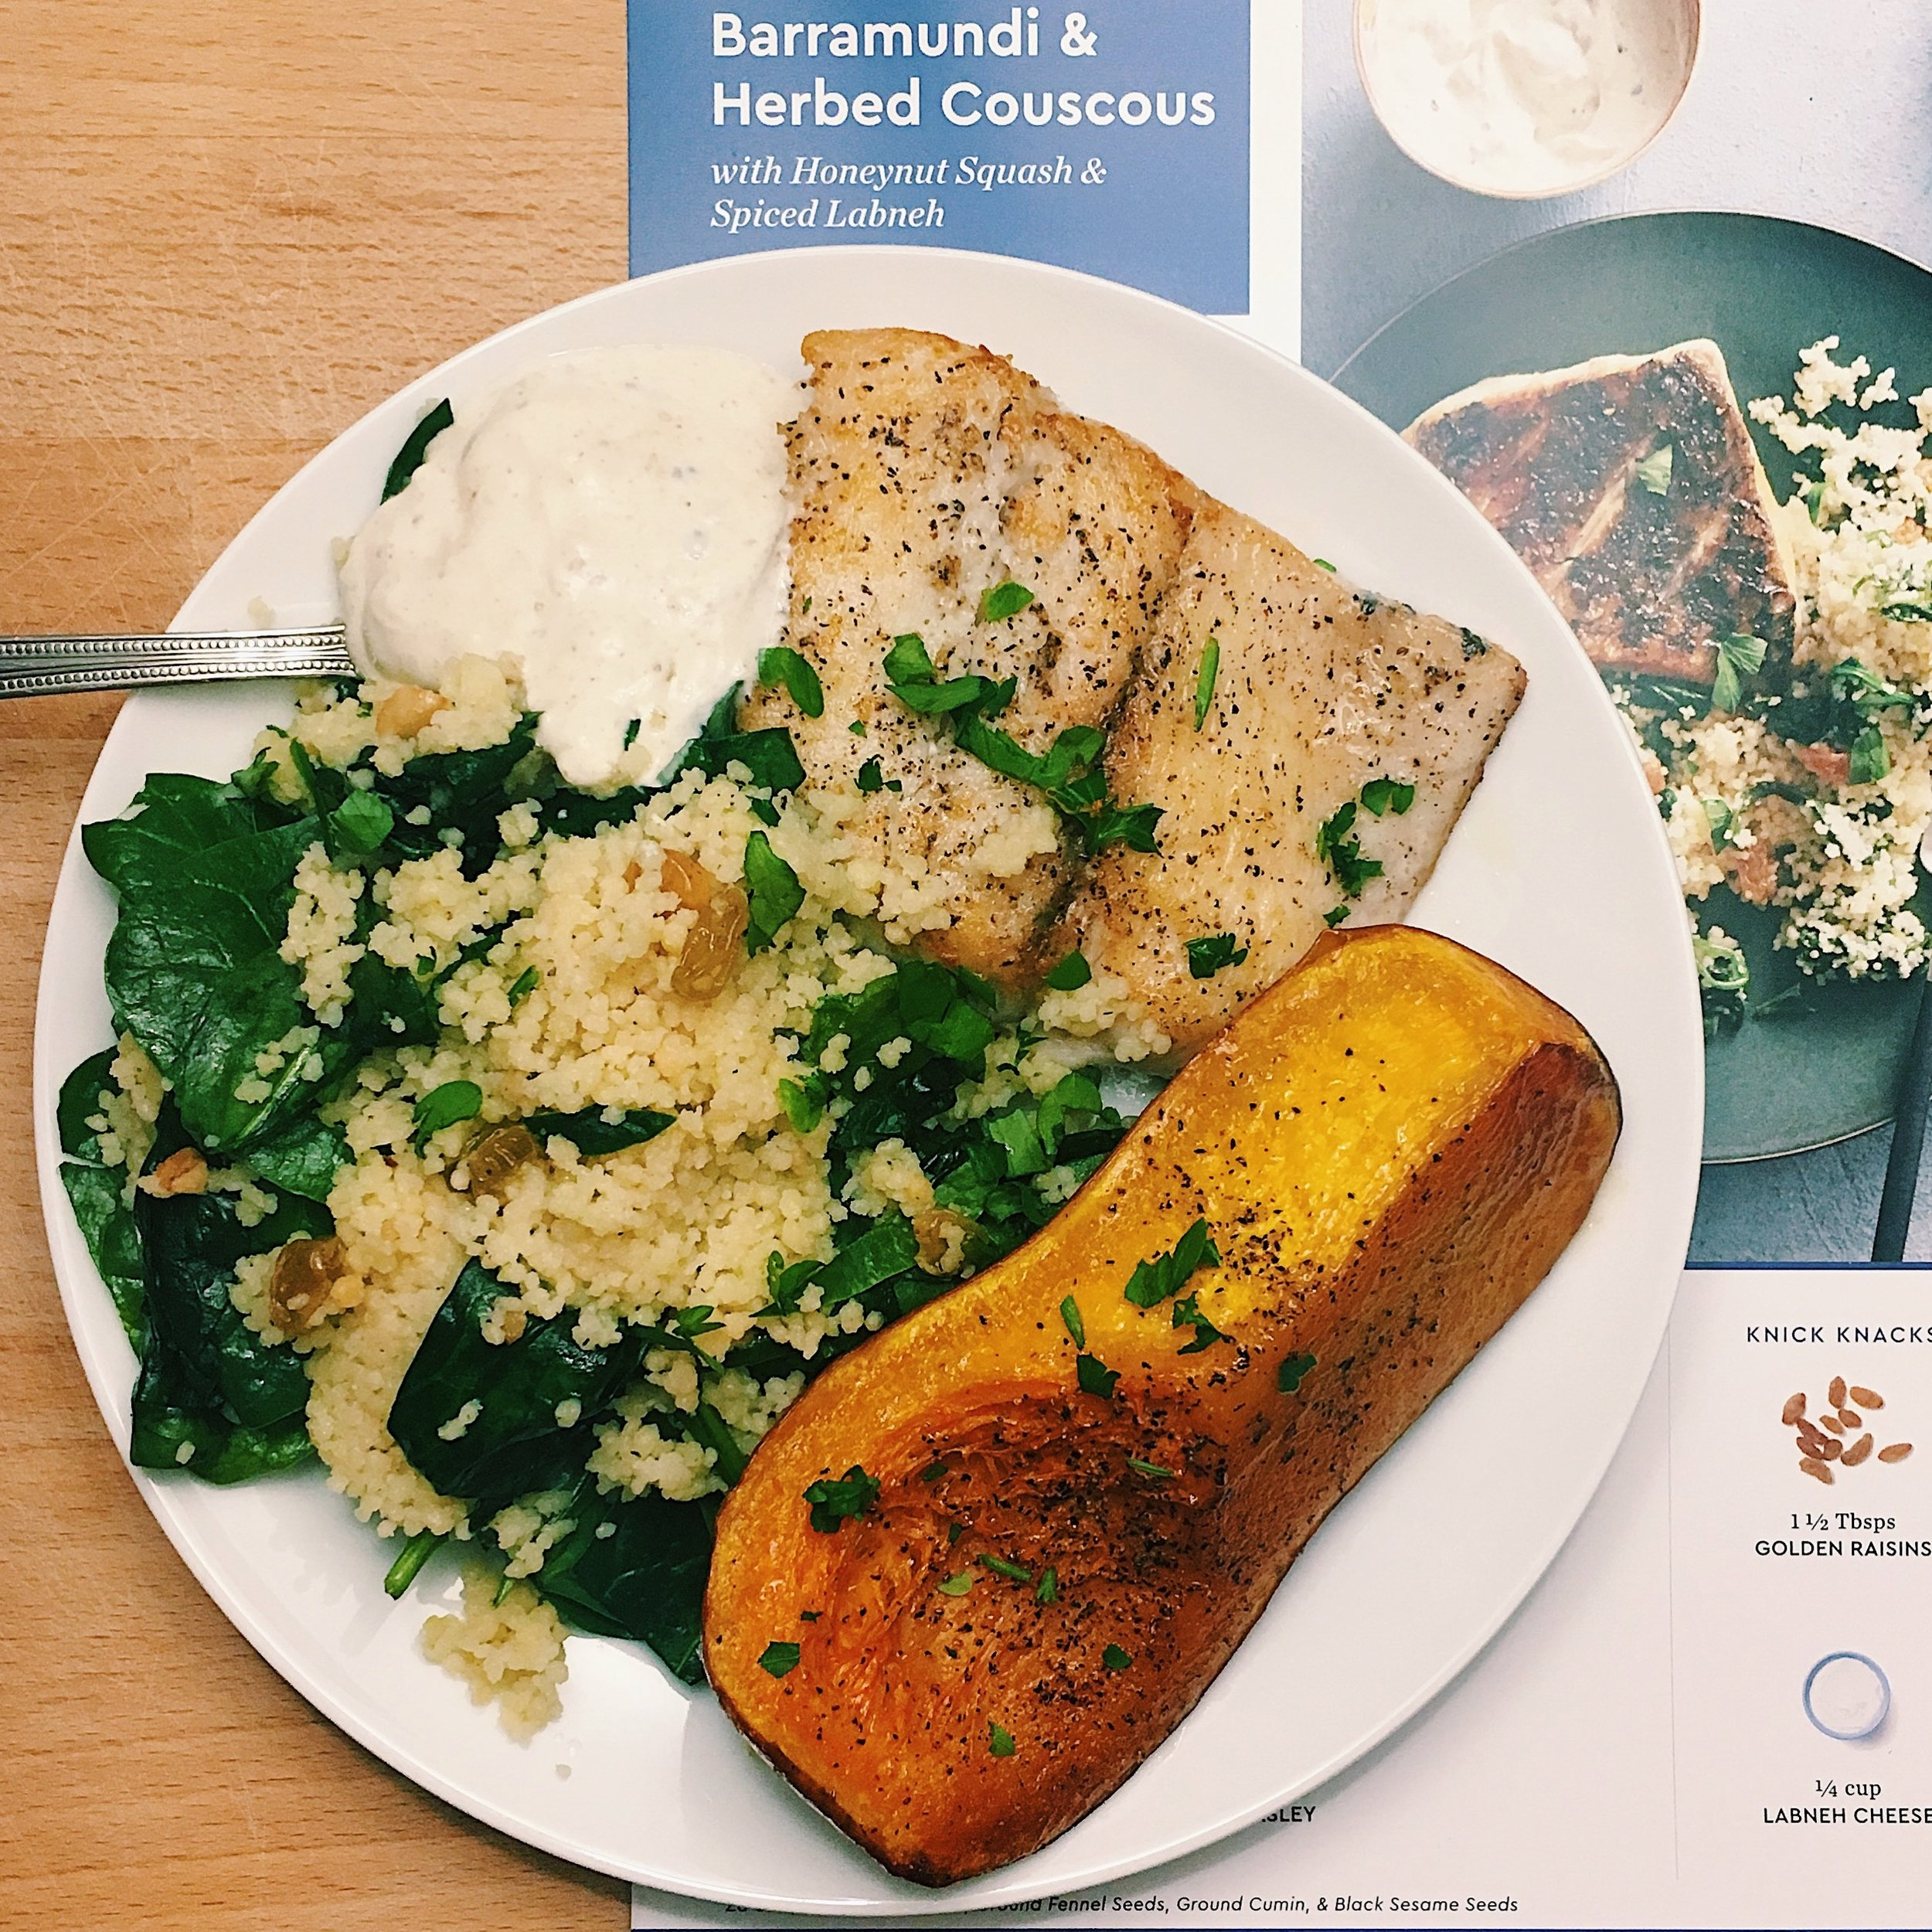 Barramundi and Herbed Couscous with Honeynut Squash